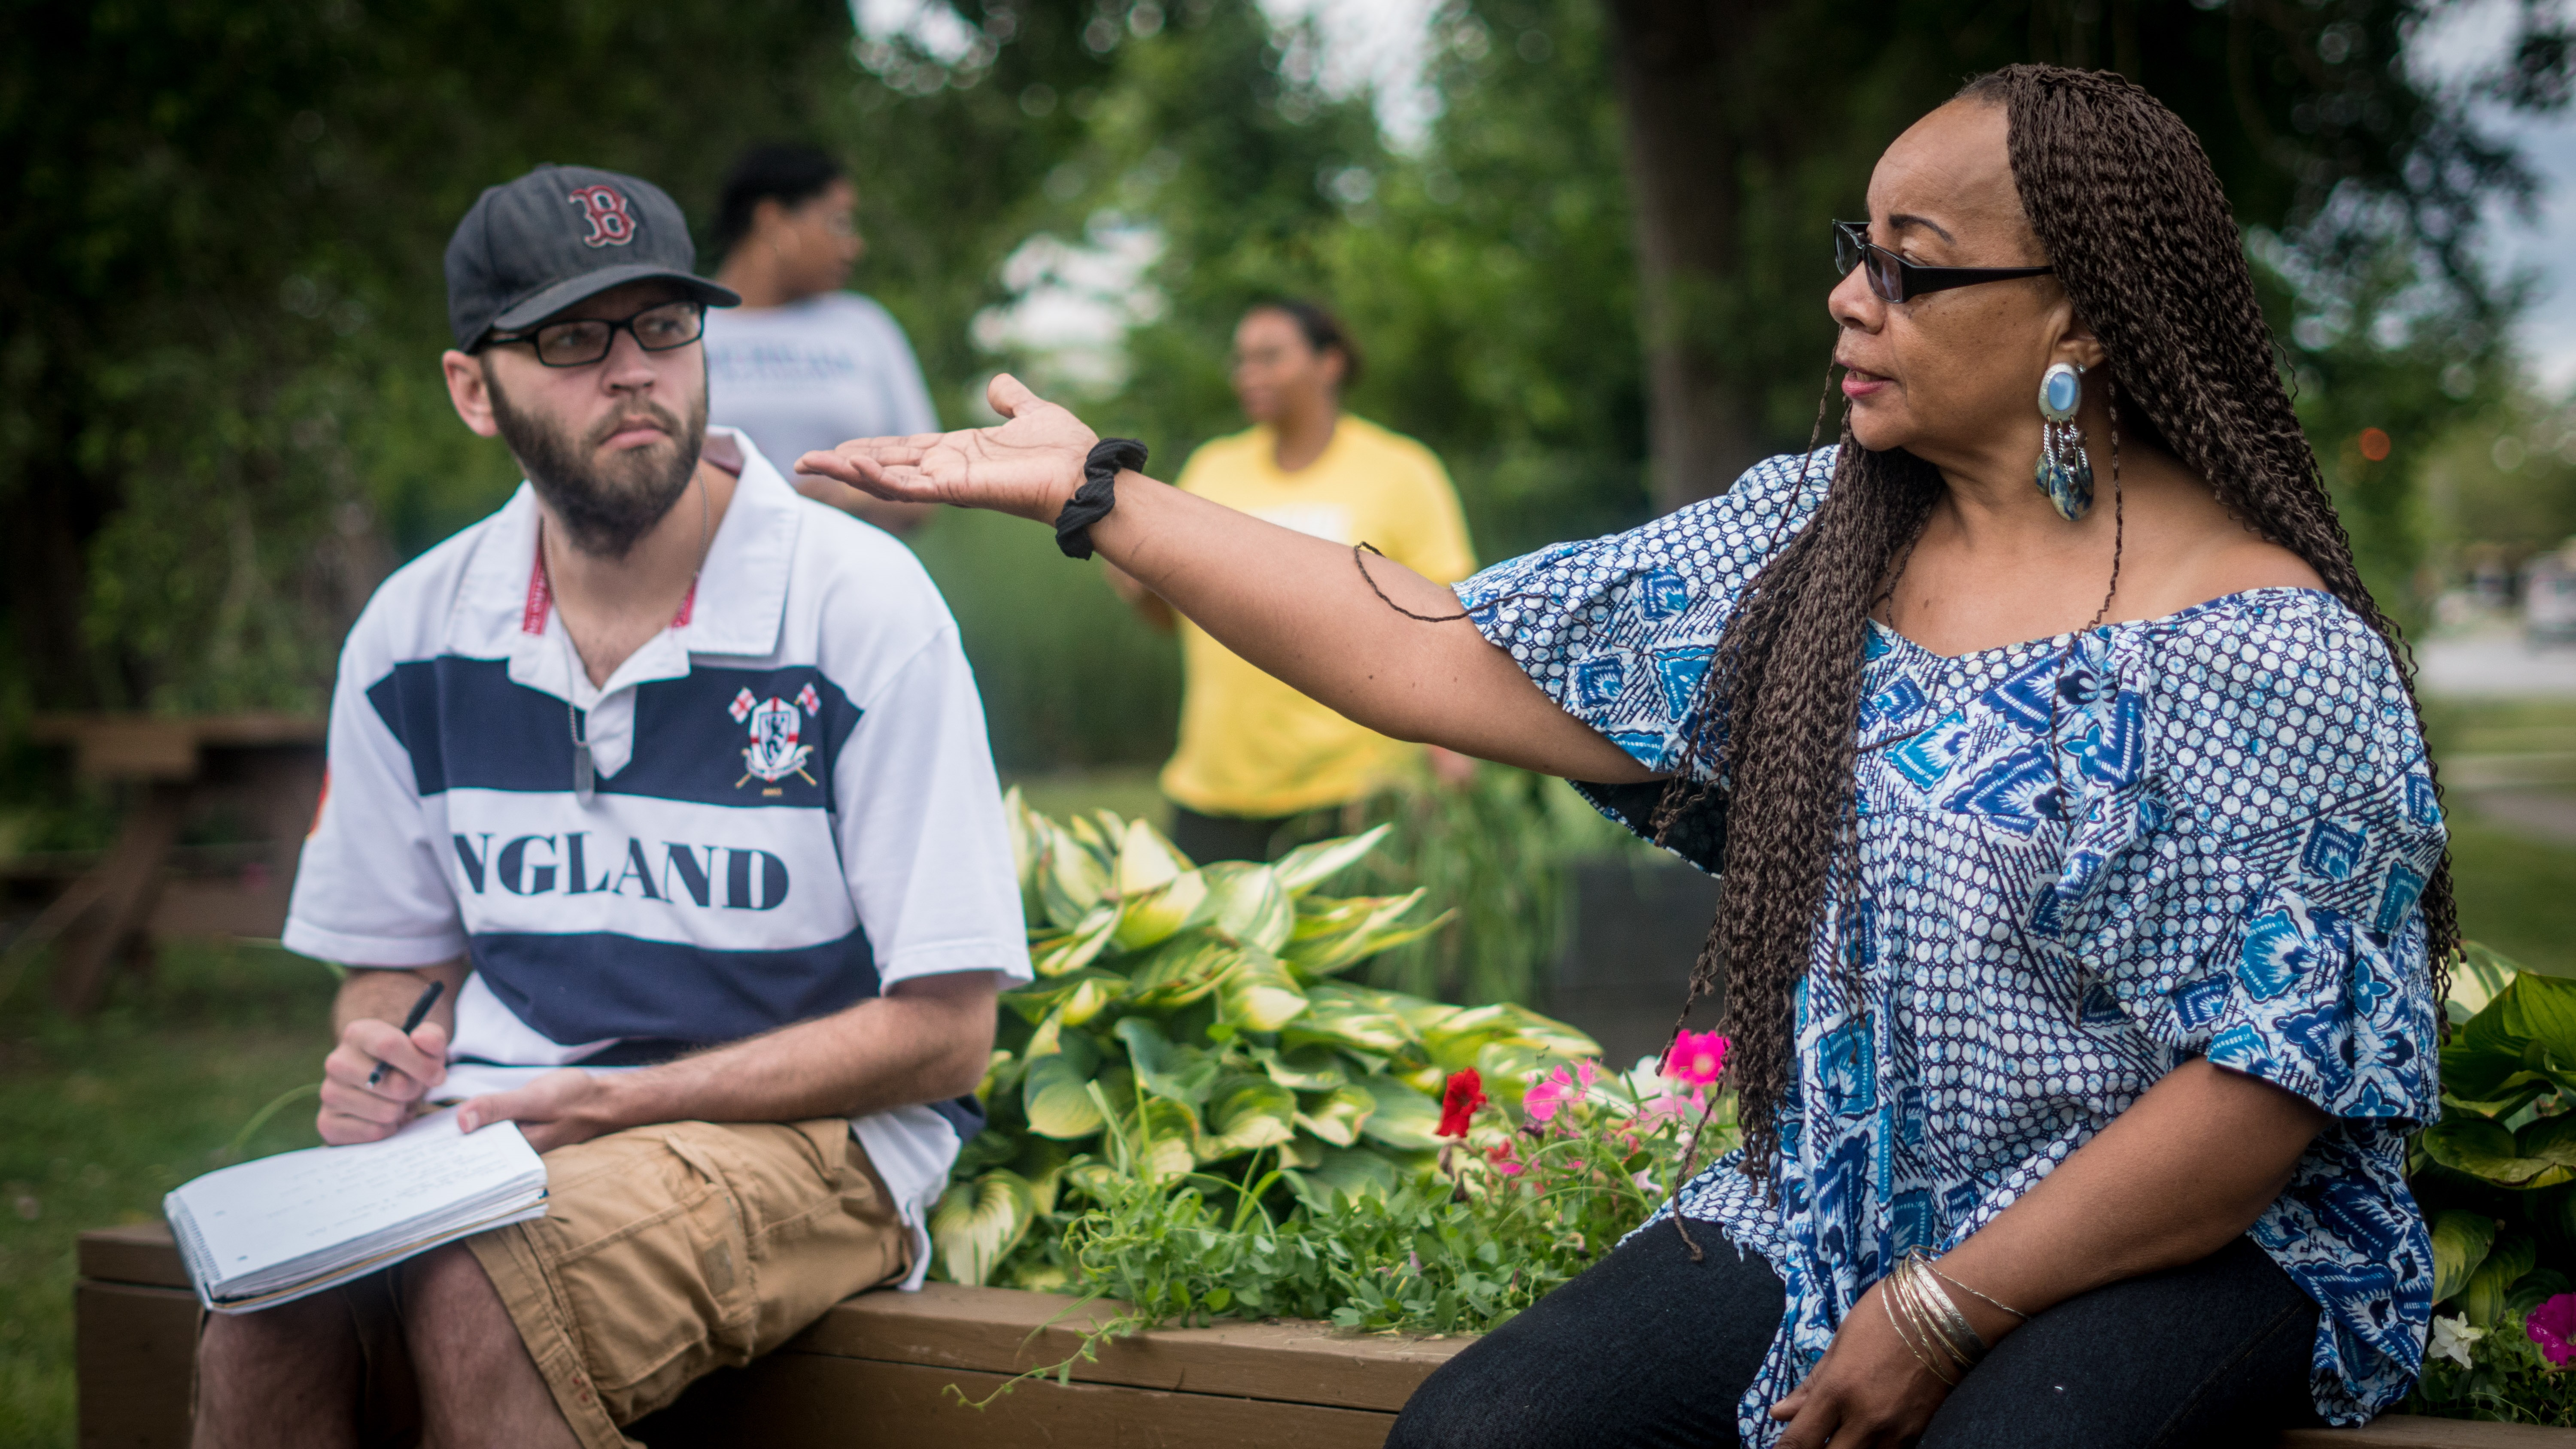 Wsu environmental health safety environmental health -  Environmental Health Hazards Present In Detroit S Urban Environment We Are Conducting Guided Environmental Health Tours Brian Smith Our Community